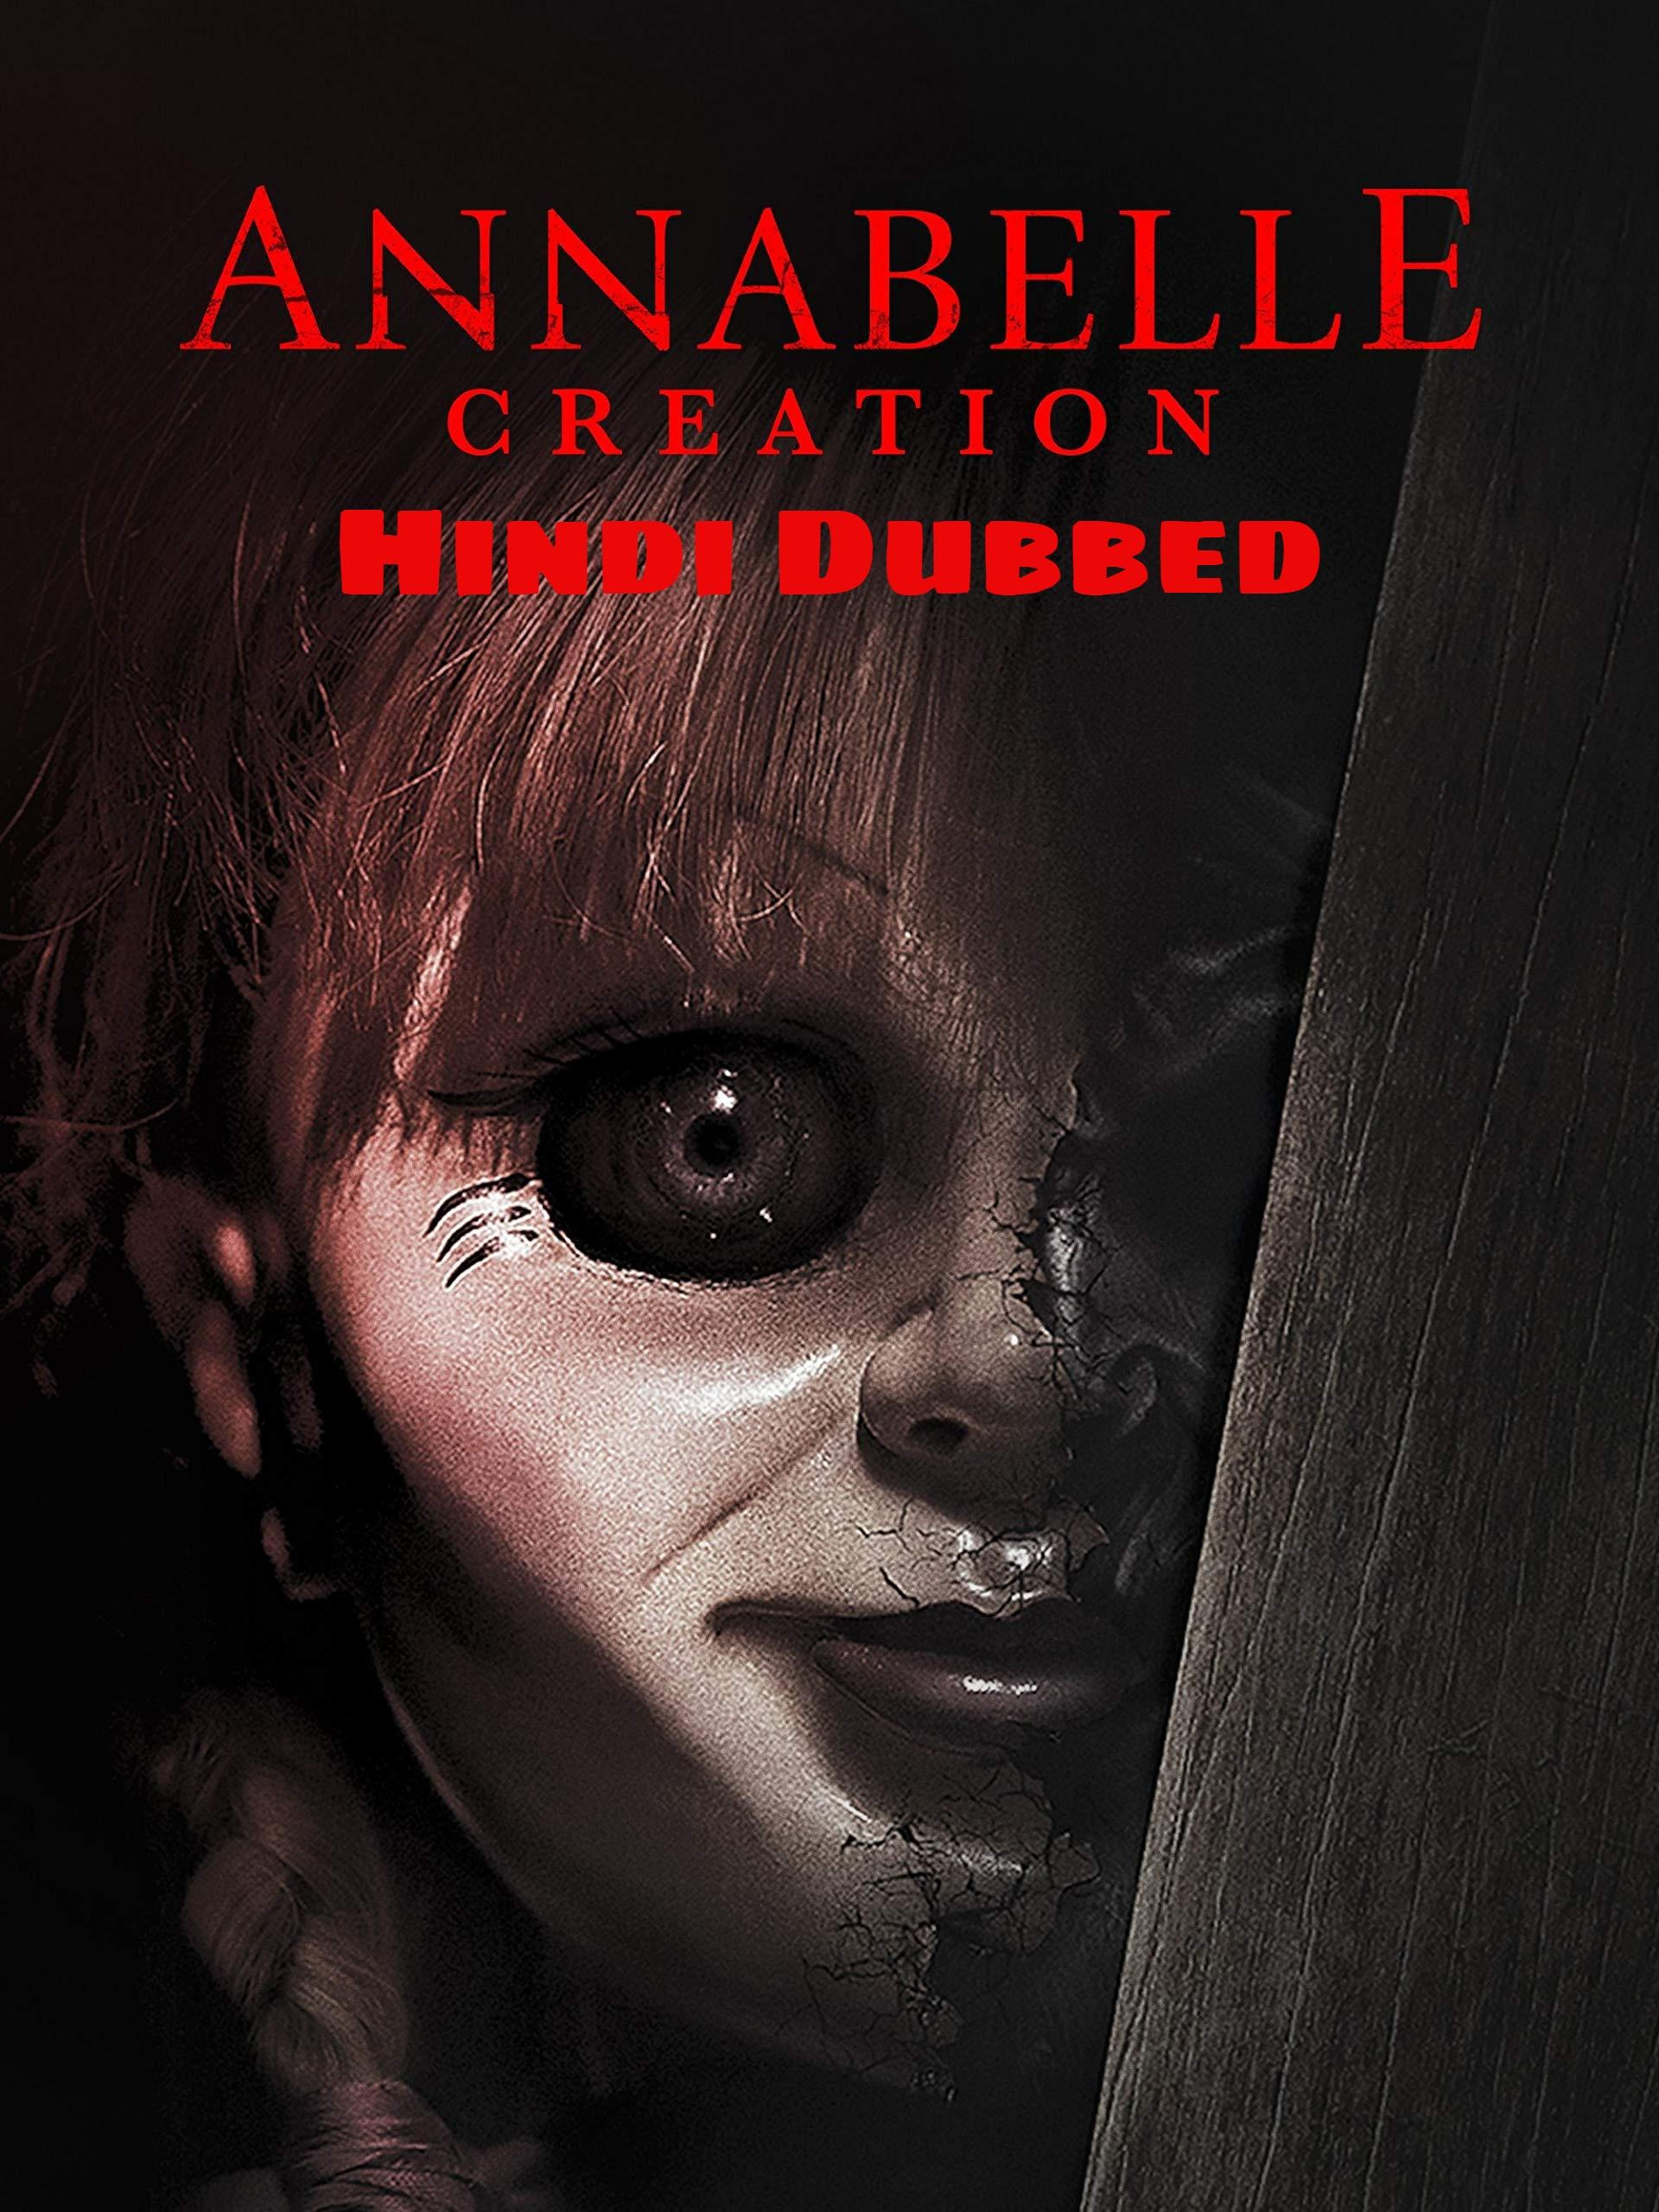 Annabelle Creation 2017 Hindi Dubbed Dvd Full Movie Buy Online At Best Prices In Pakistan Daraz Pk